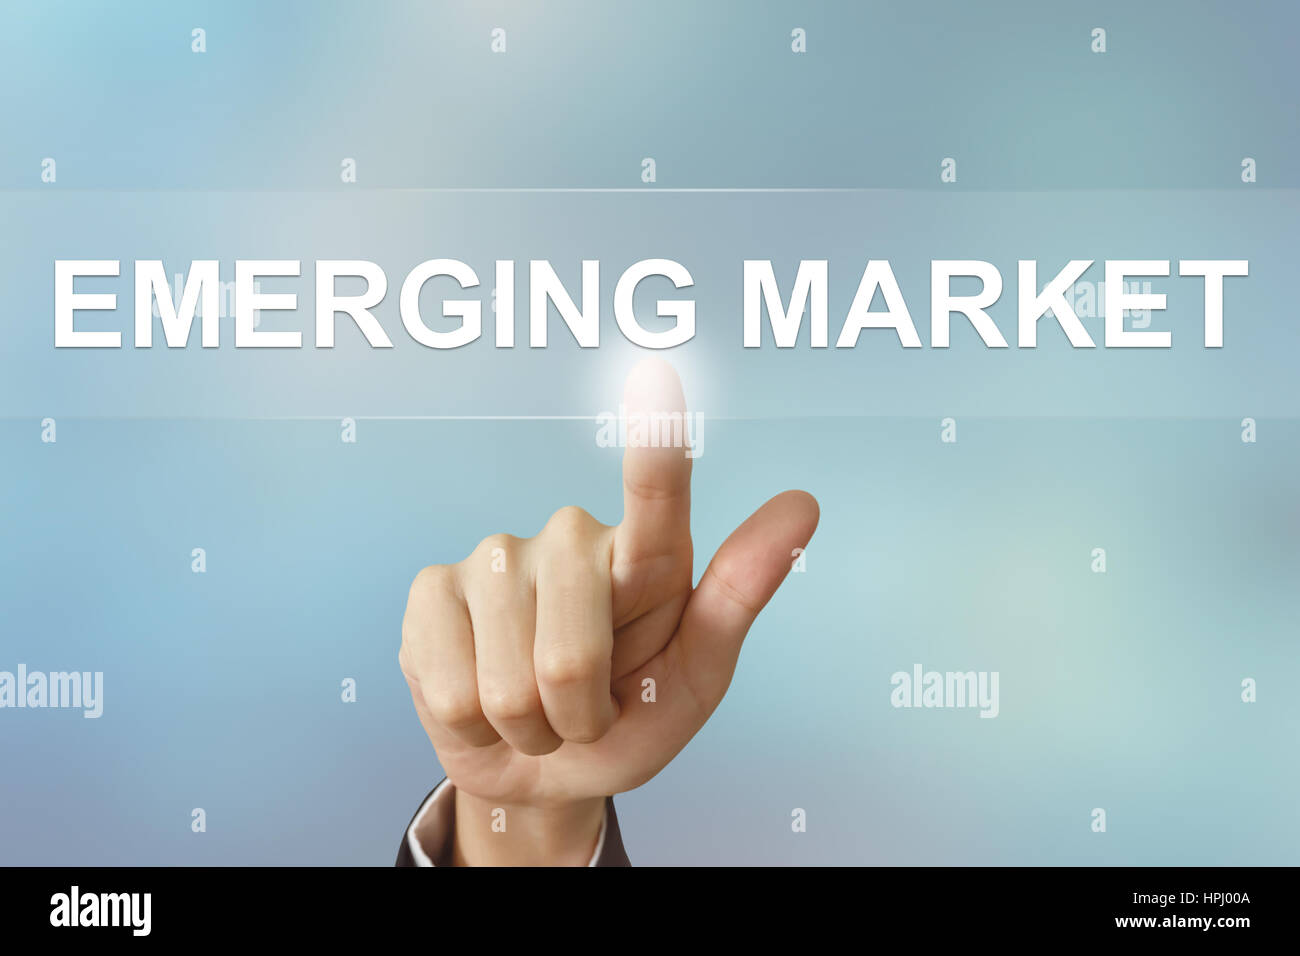 business hand pushing emerging market button on blurred background Stock Photo